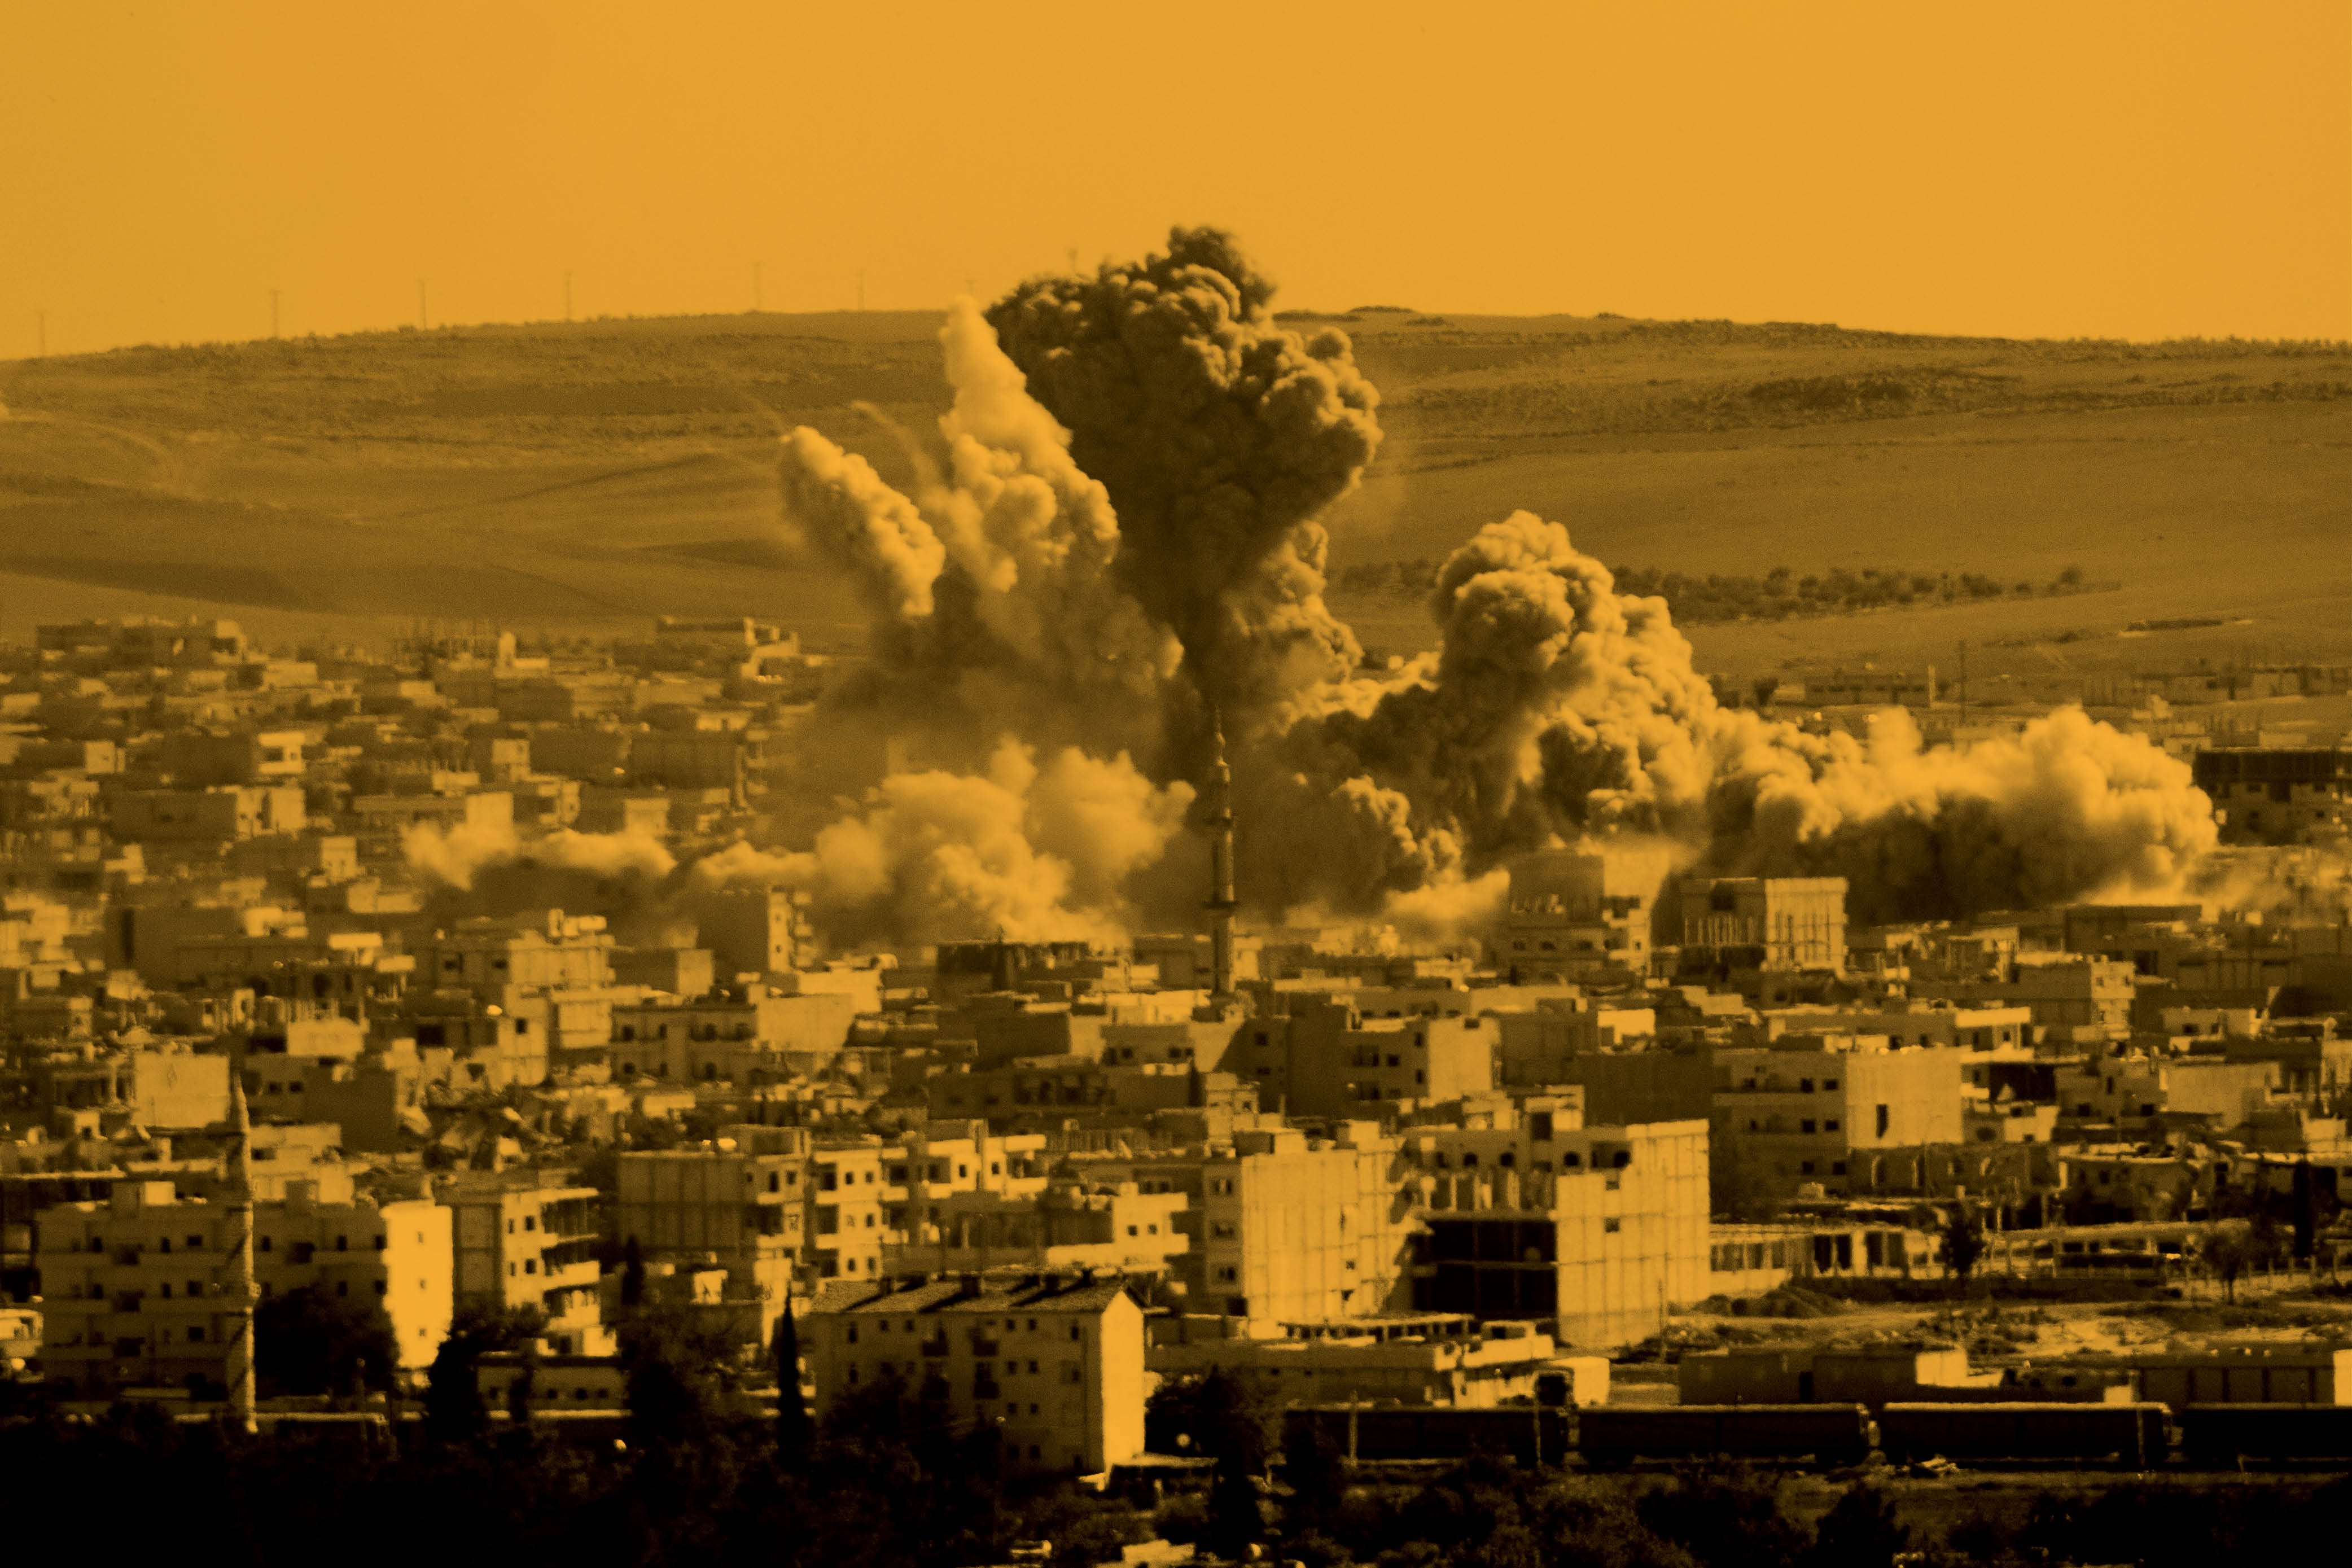 Flames rise from an explosion in the Syrian town of Kobani after a U.S.-led coalition airstrike on Oct. 22, 2014.